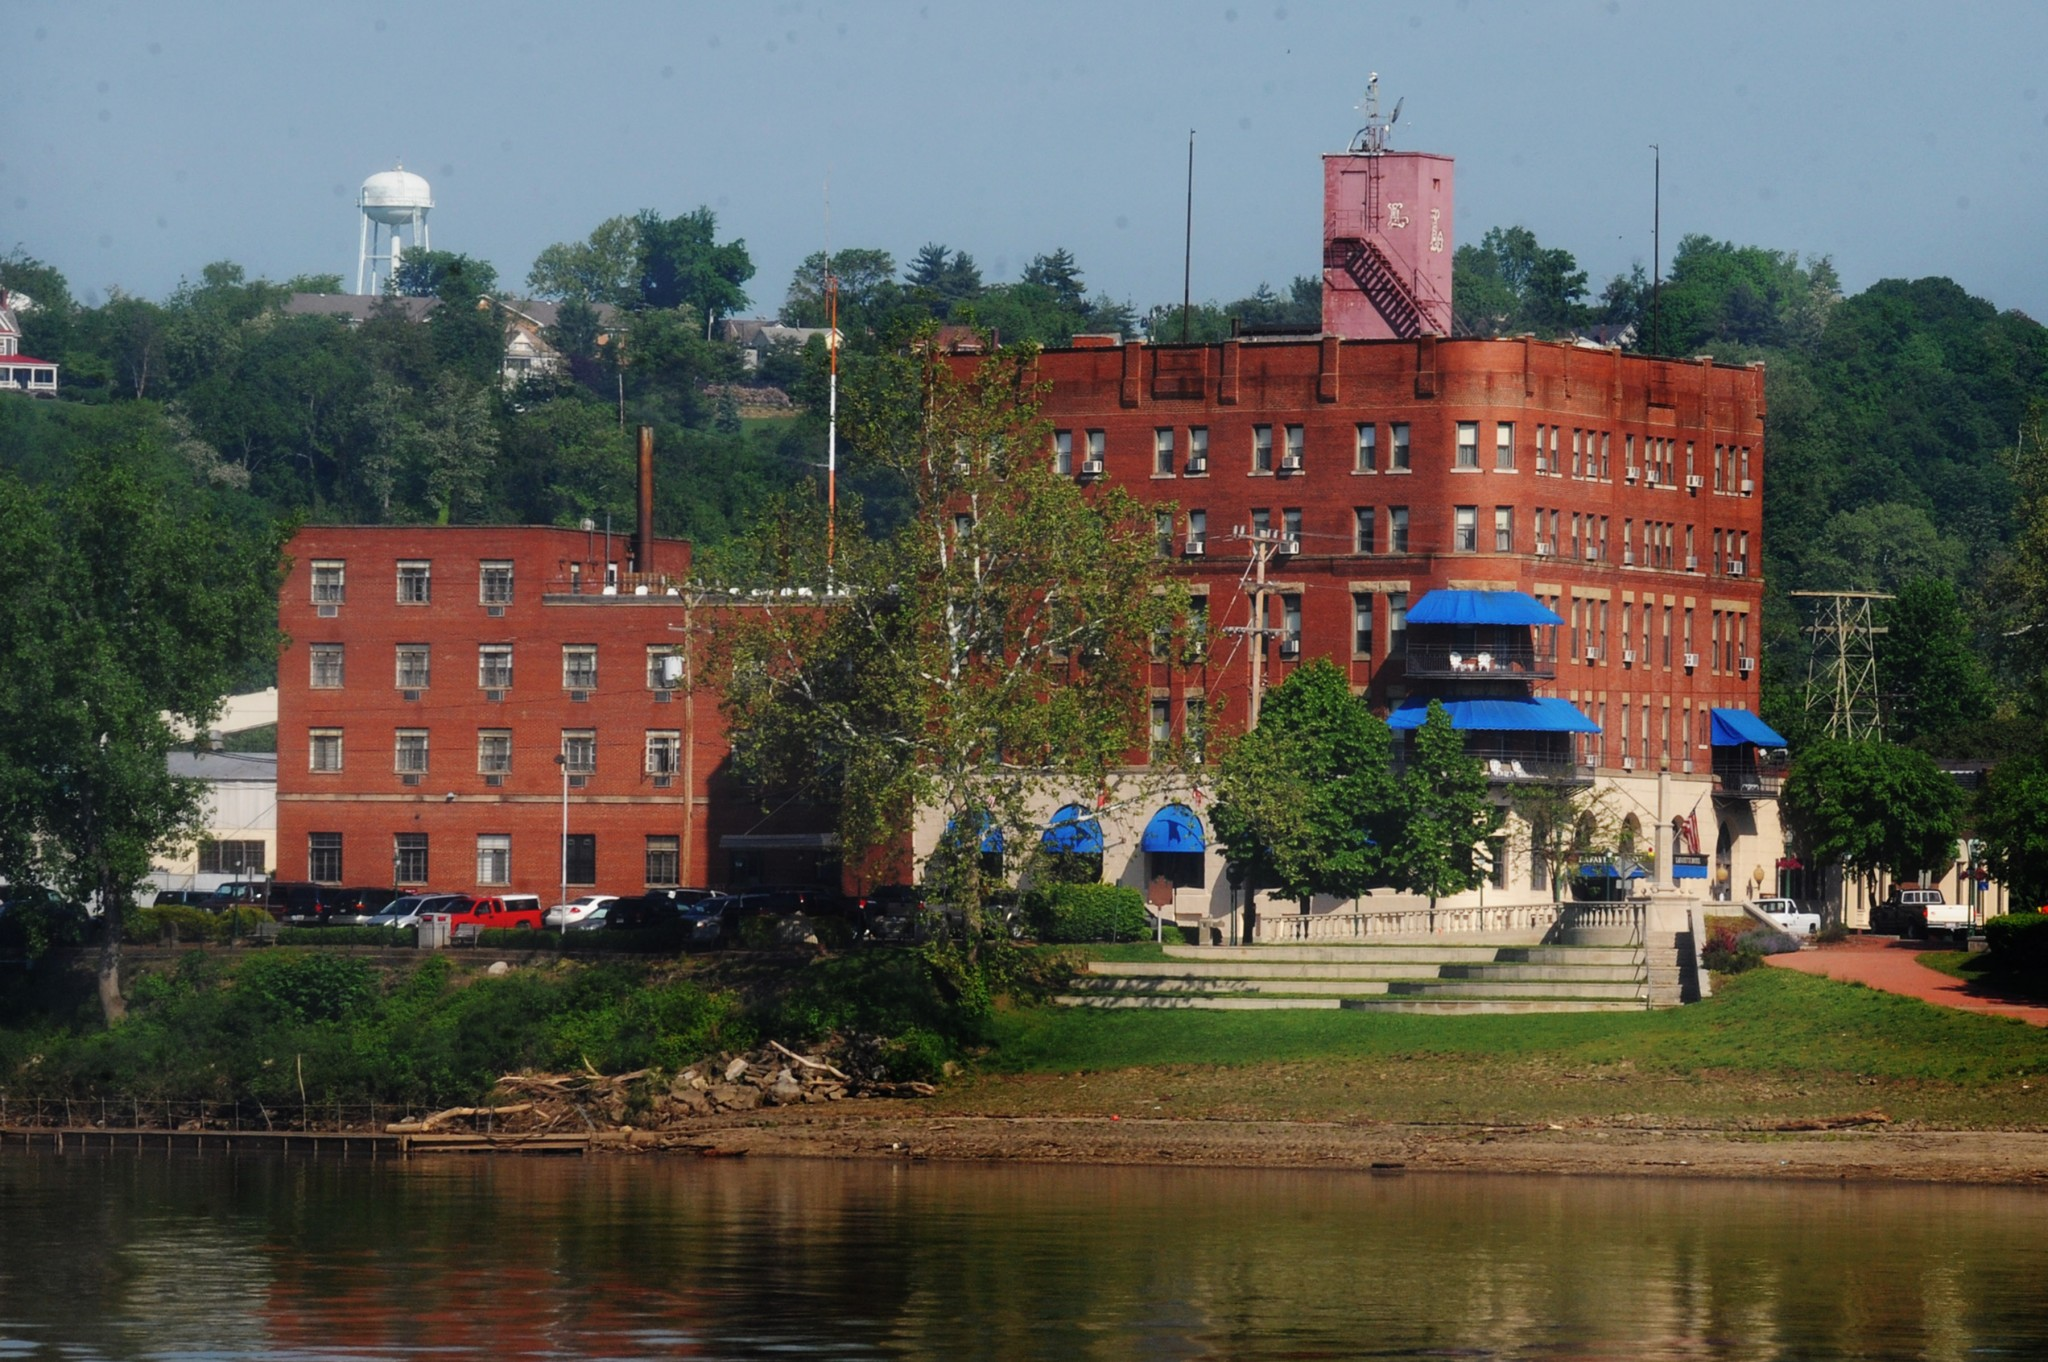 The historic Lafayette Hotel stands at the mouth of the Muskingum River, offering one of the best river views in the city from a small park at the city's fountain. The 1918 hotel, one of many accommodations available, features the views, the great food and ambiance of the Gun Room Restaurant, as well as serving as focal point for the Sternwheel Festival. (Photo by Art Weber)